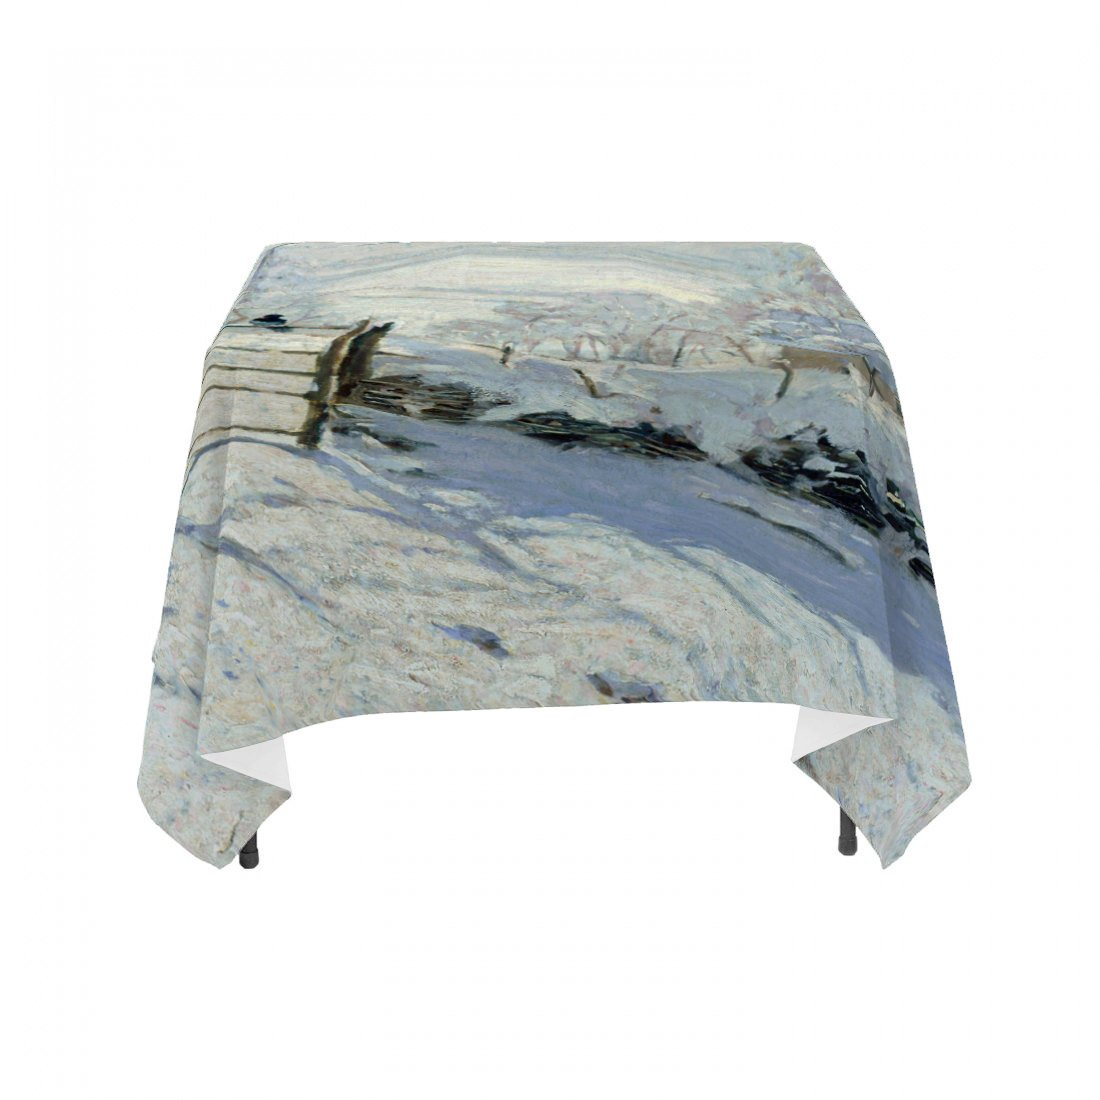 "Claude Monet's ""The Magpie"", Linen Table Cloth"